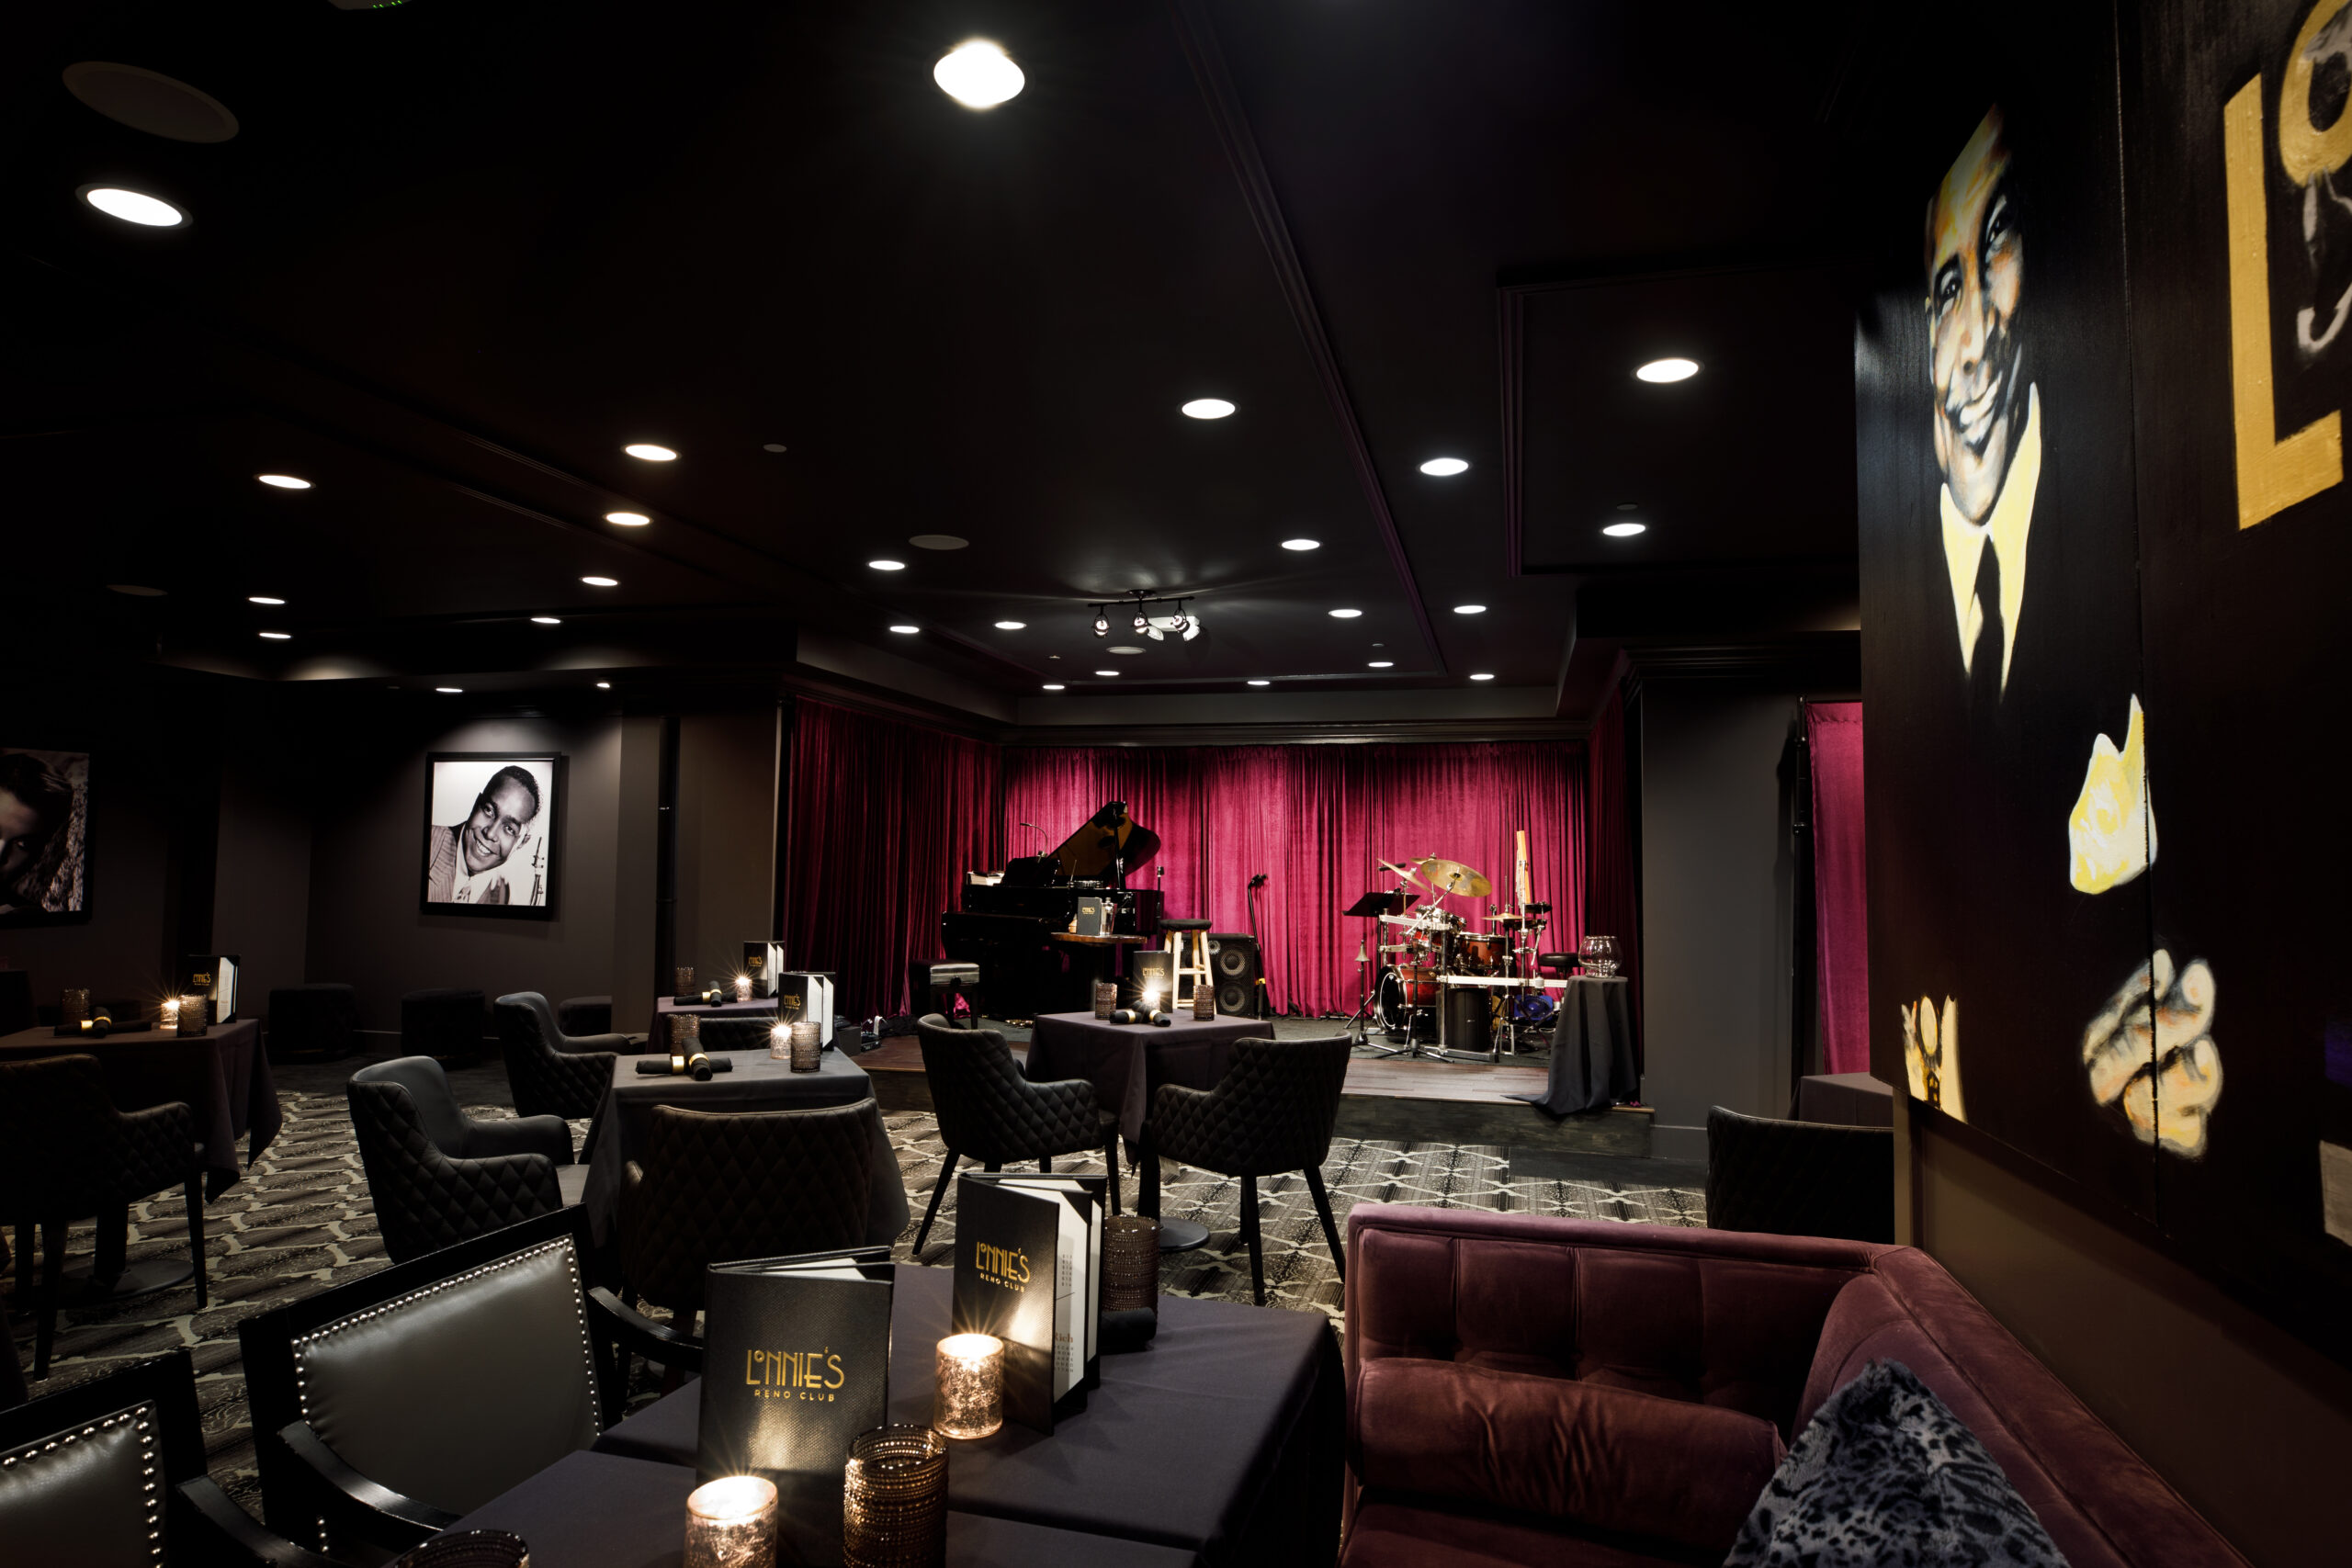 dark club lounge with a stage that has a piano and drumset on it